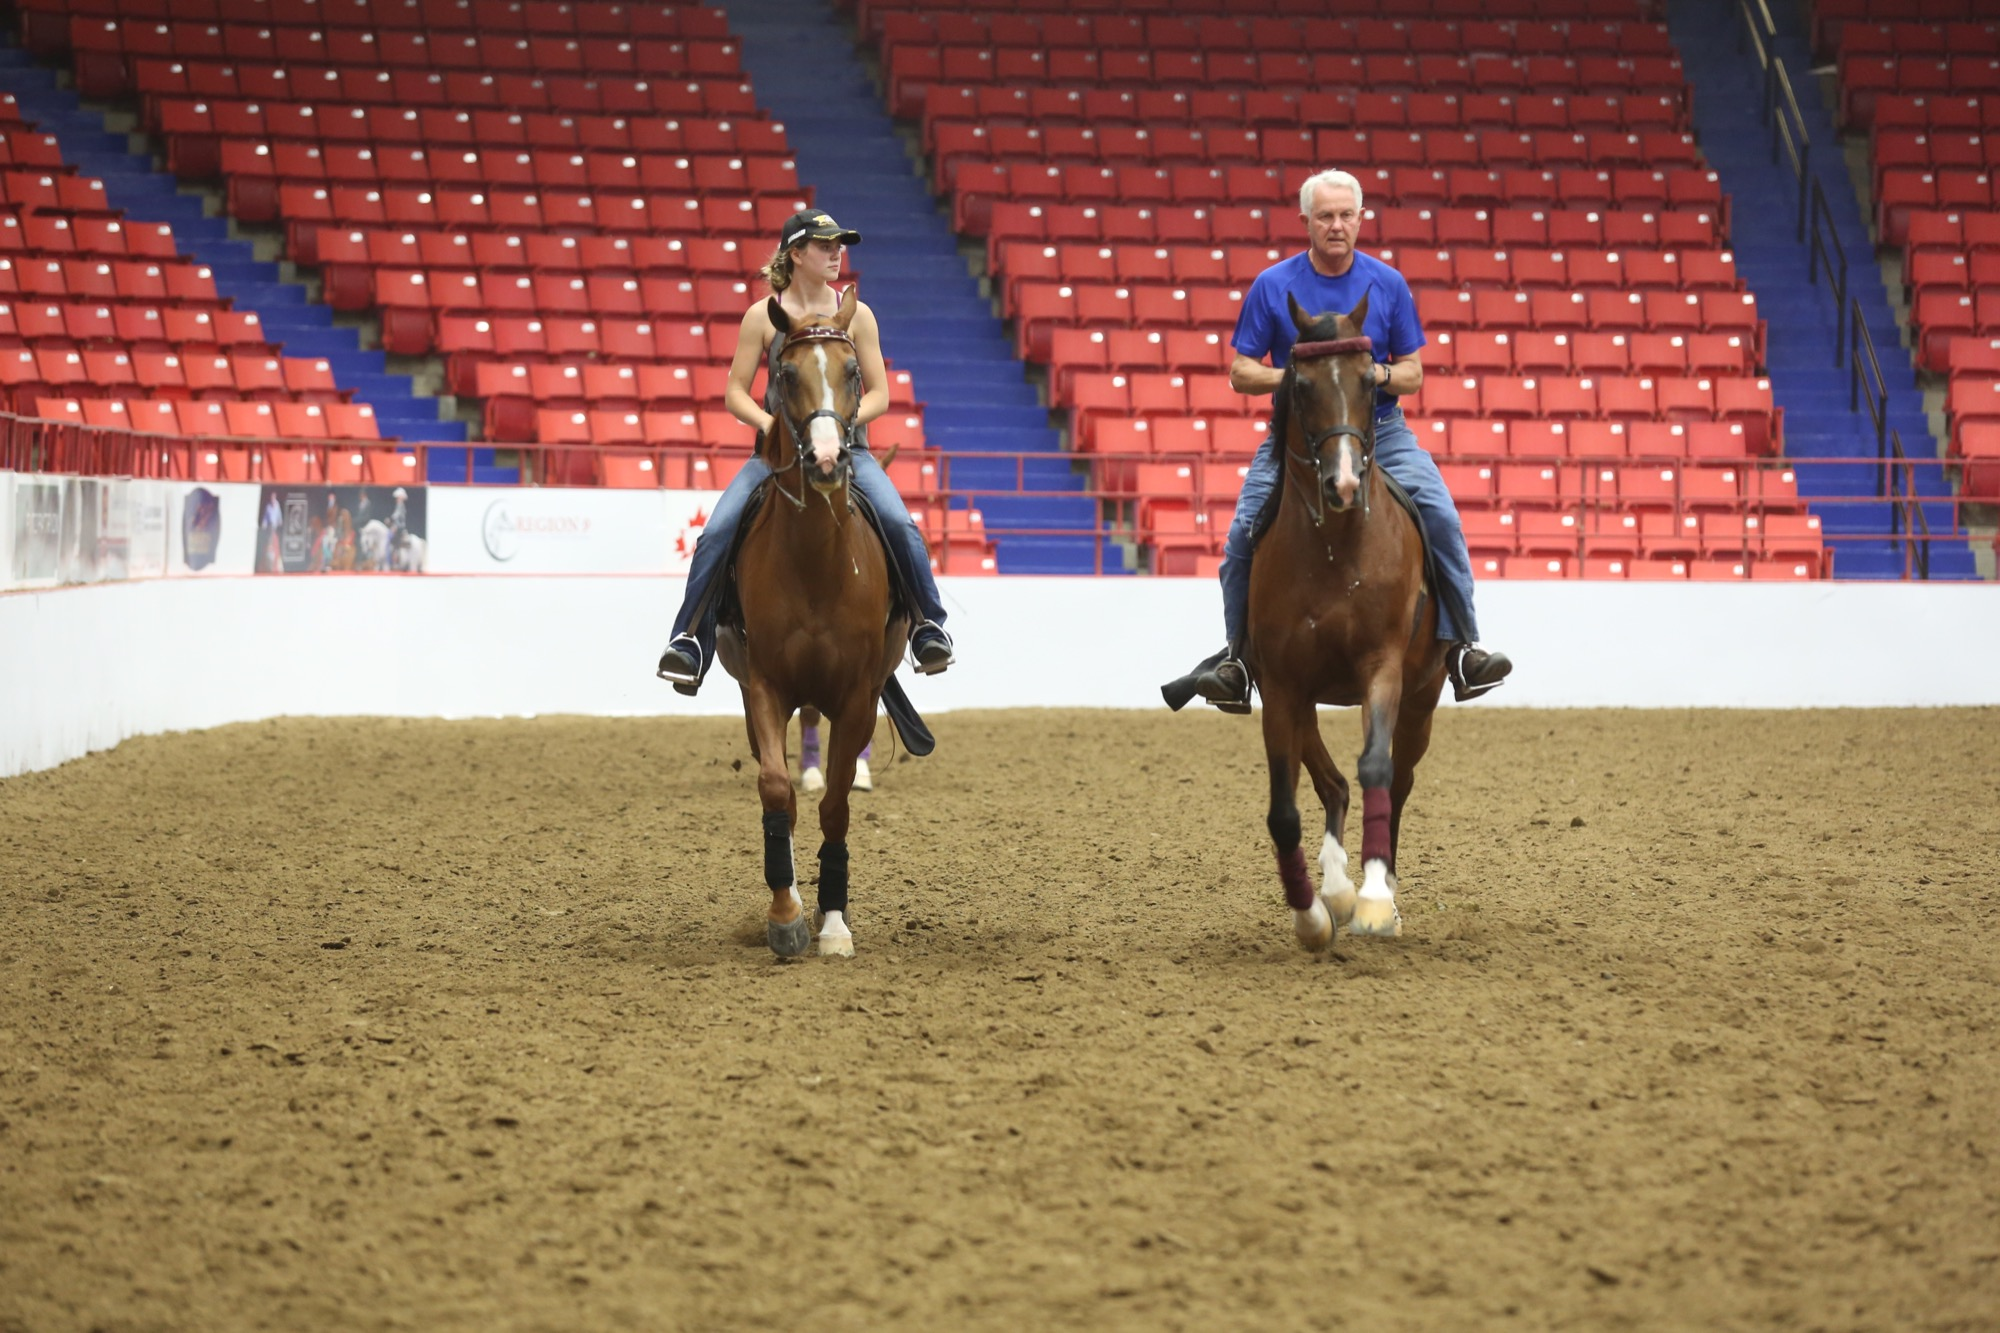 Horses and riders gear up for the Canadian National Arabian & Half-Arabian Championship Horse Show that began on Sunday in Brandon.